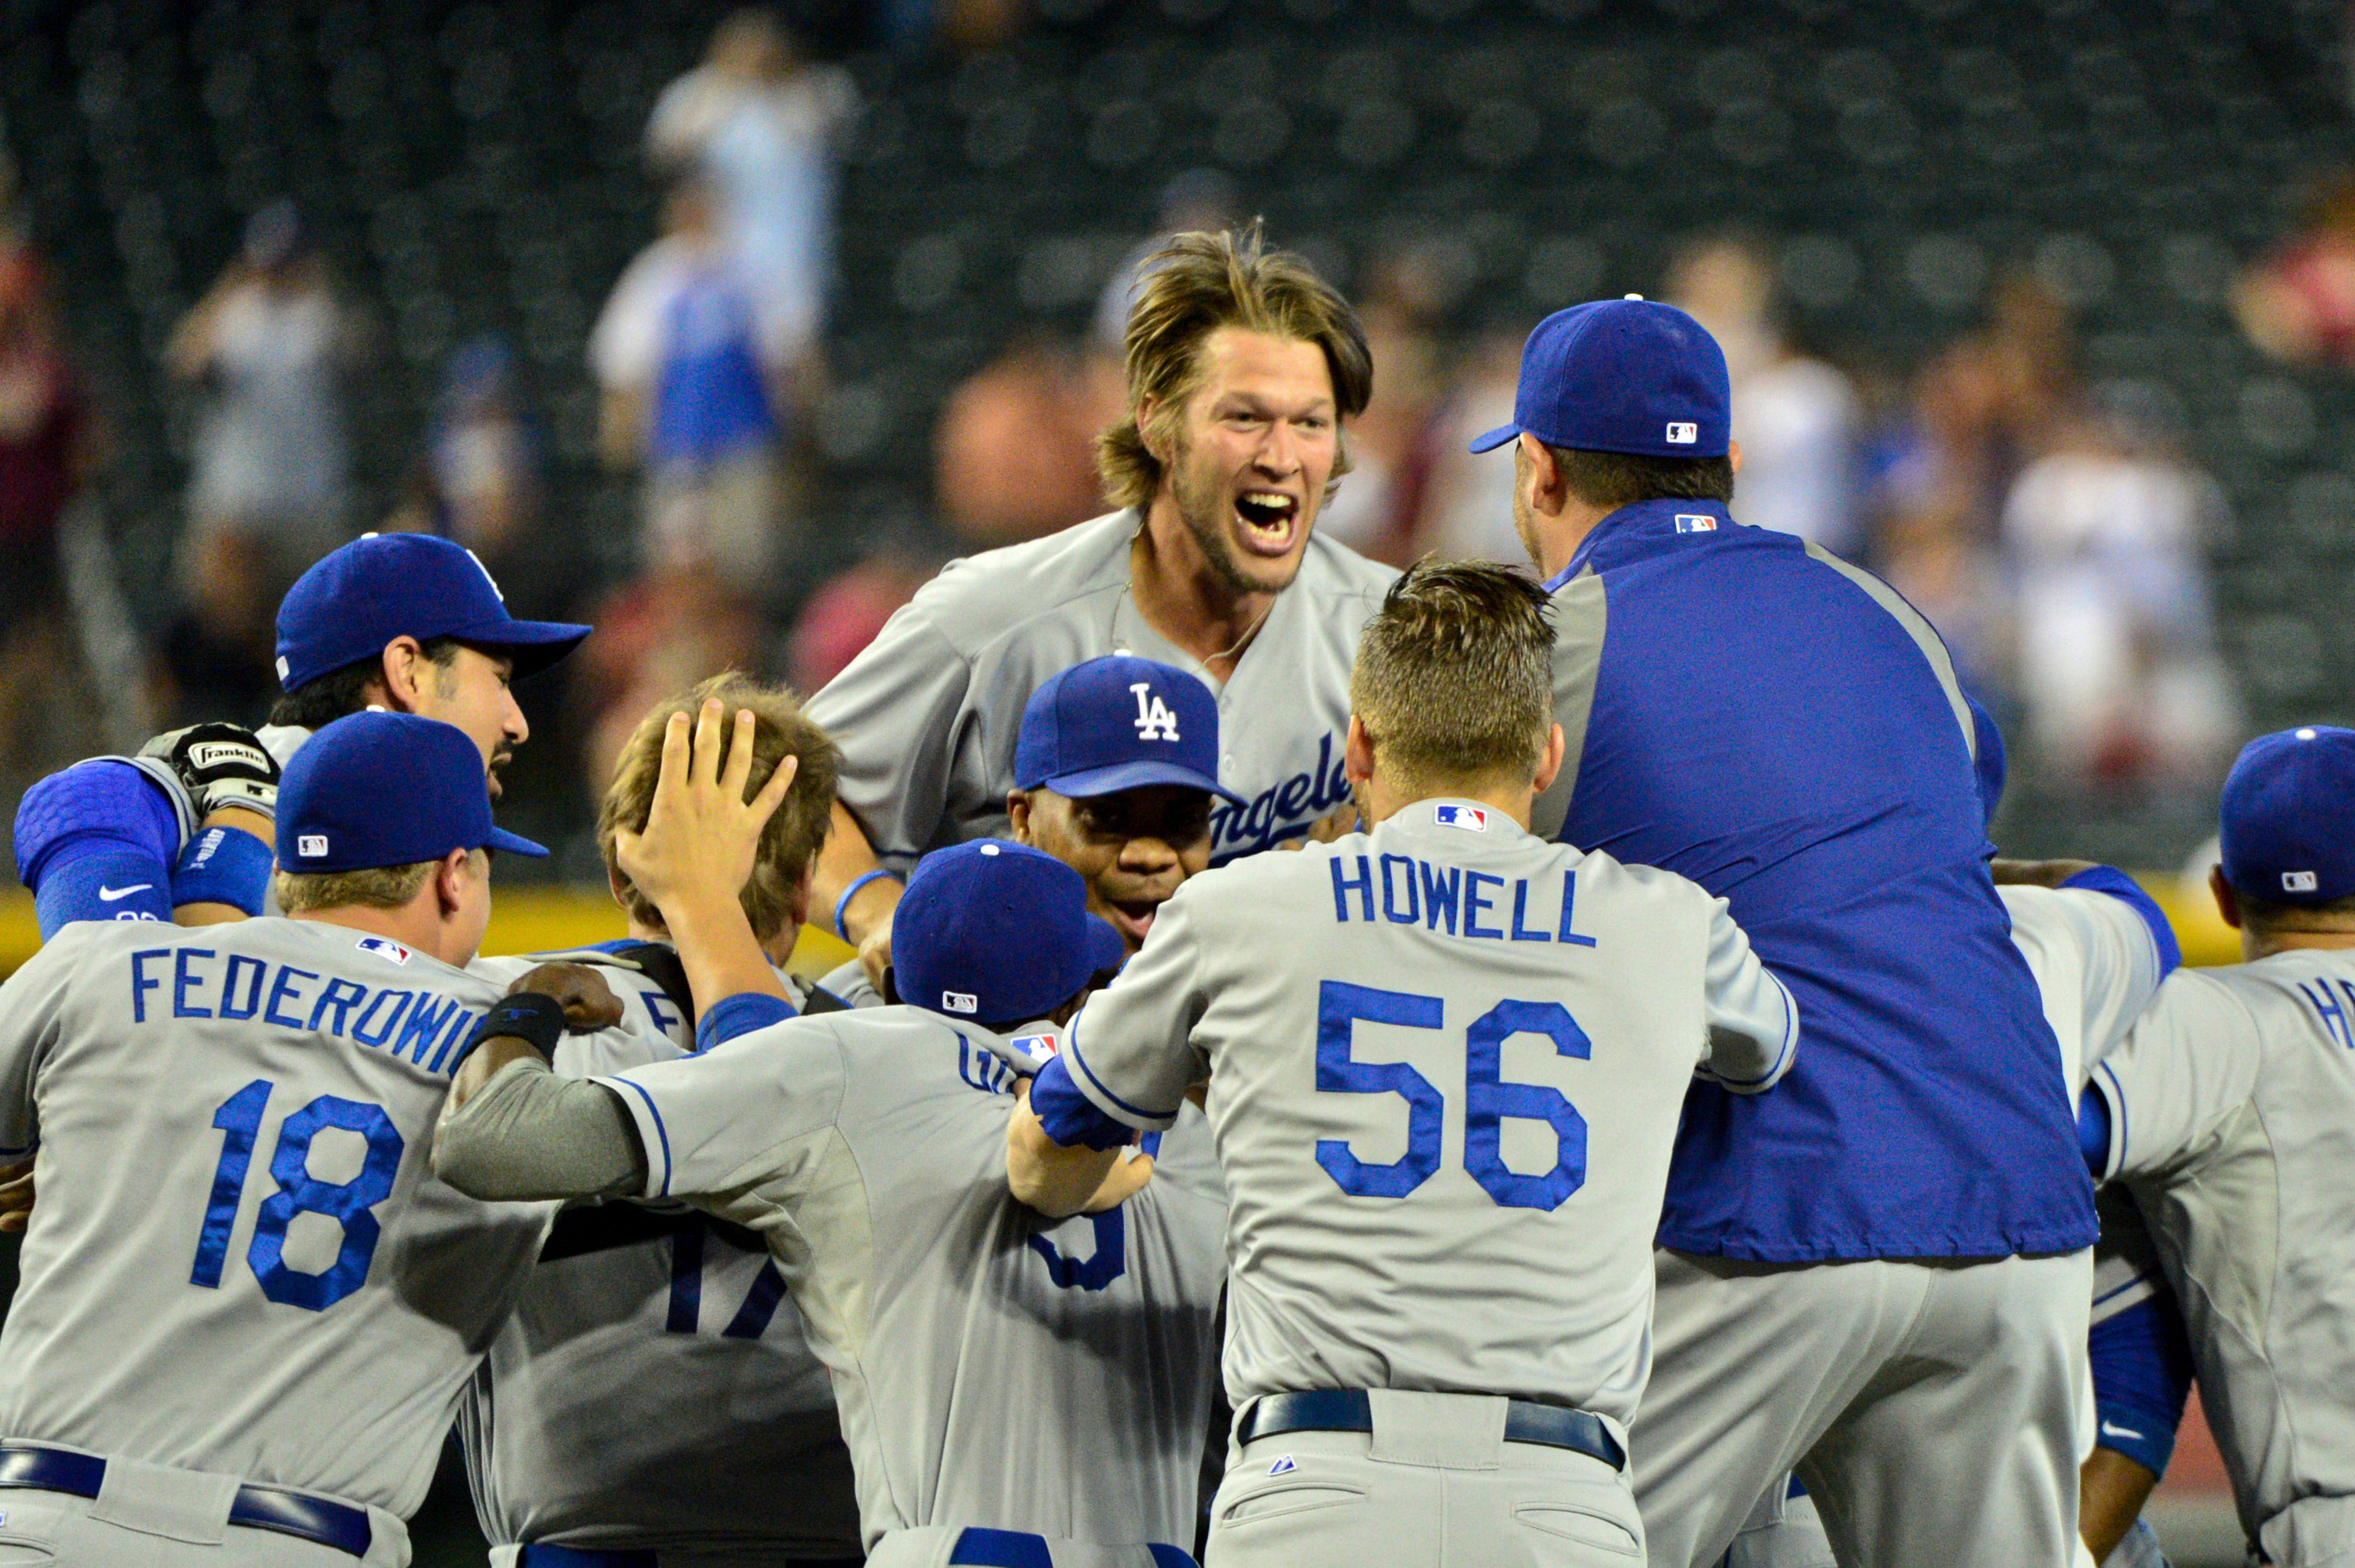 Clayton Kershaw and the Dodgers celebrate.